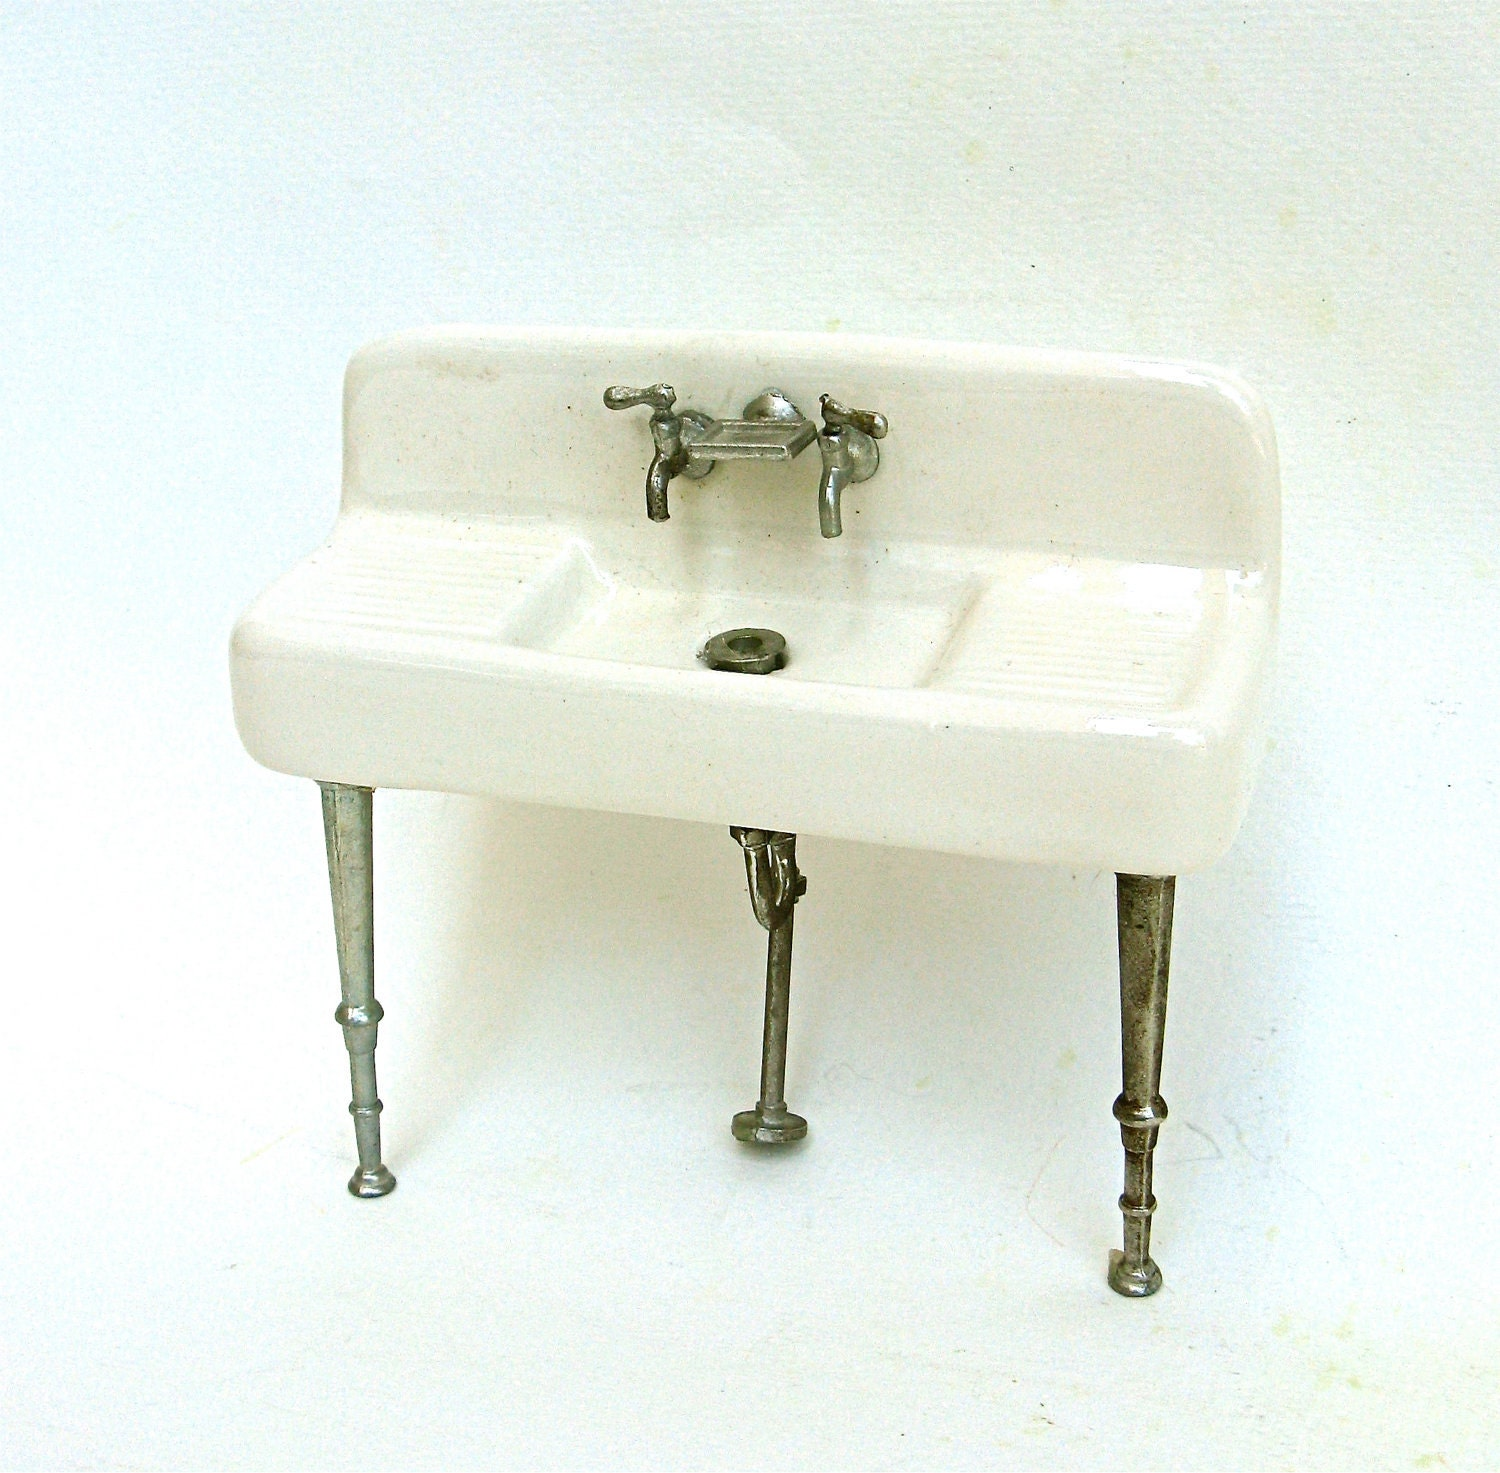 Https Www Etsy Com Listing 80166500 Vintage Miniature Kitchen Sink Porcelain